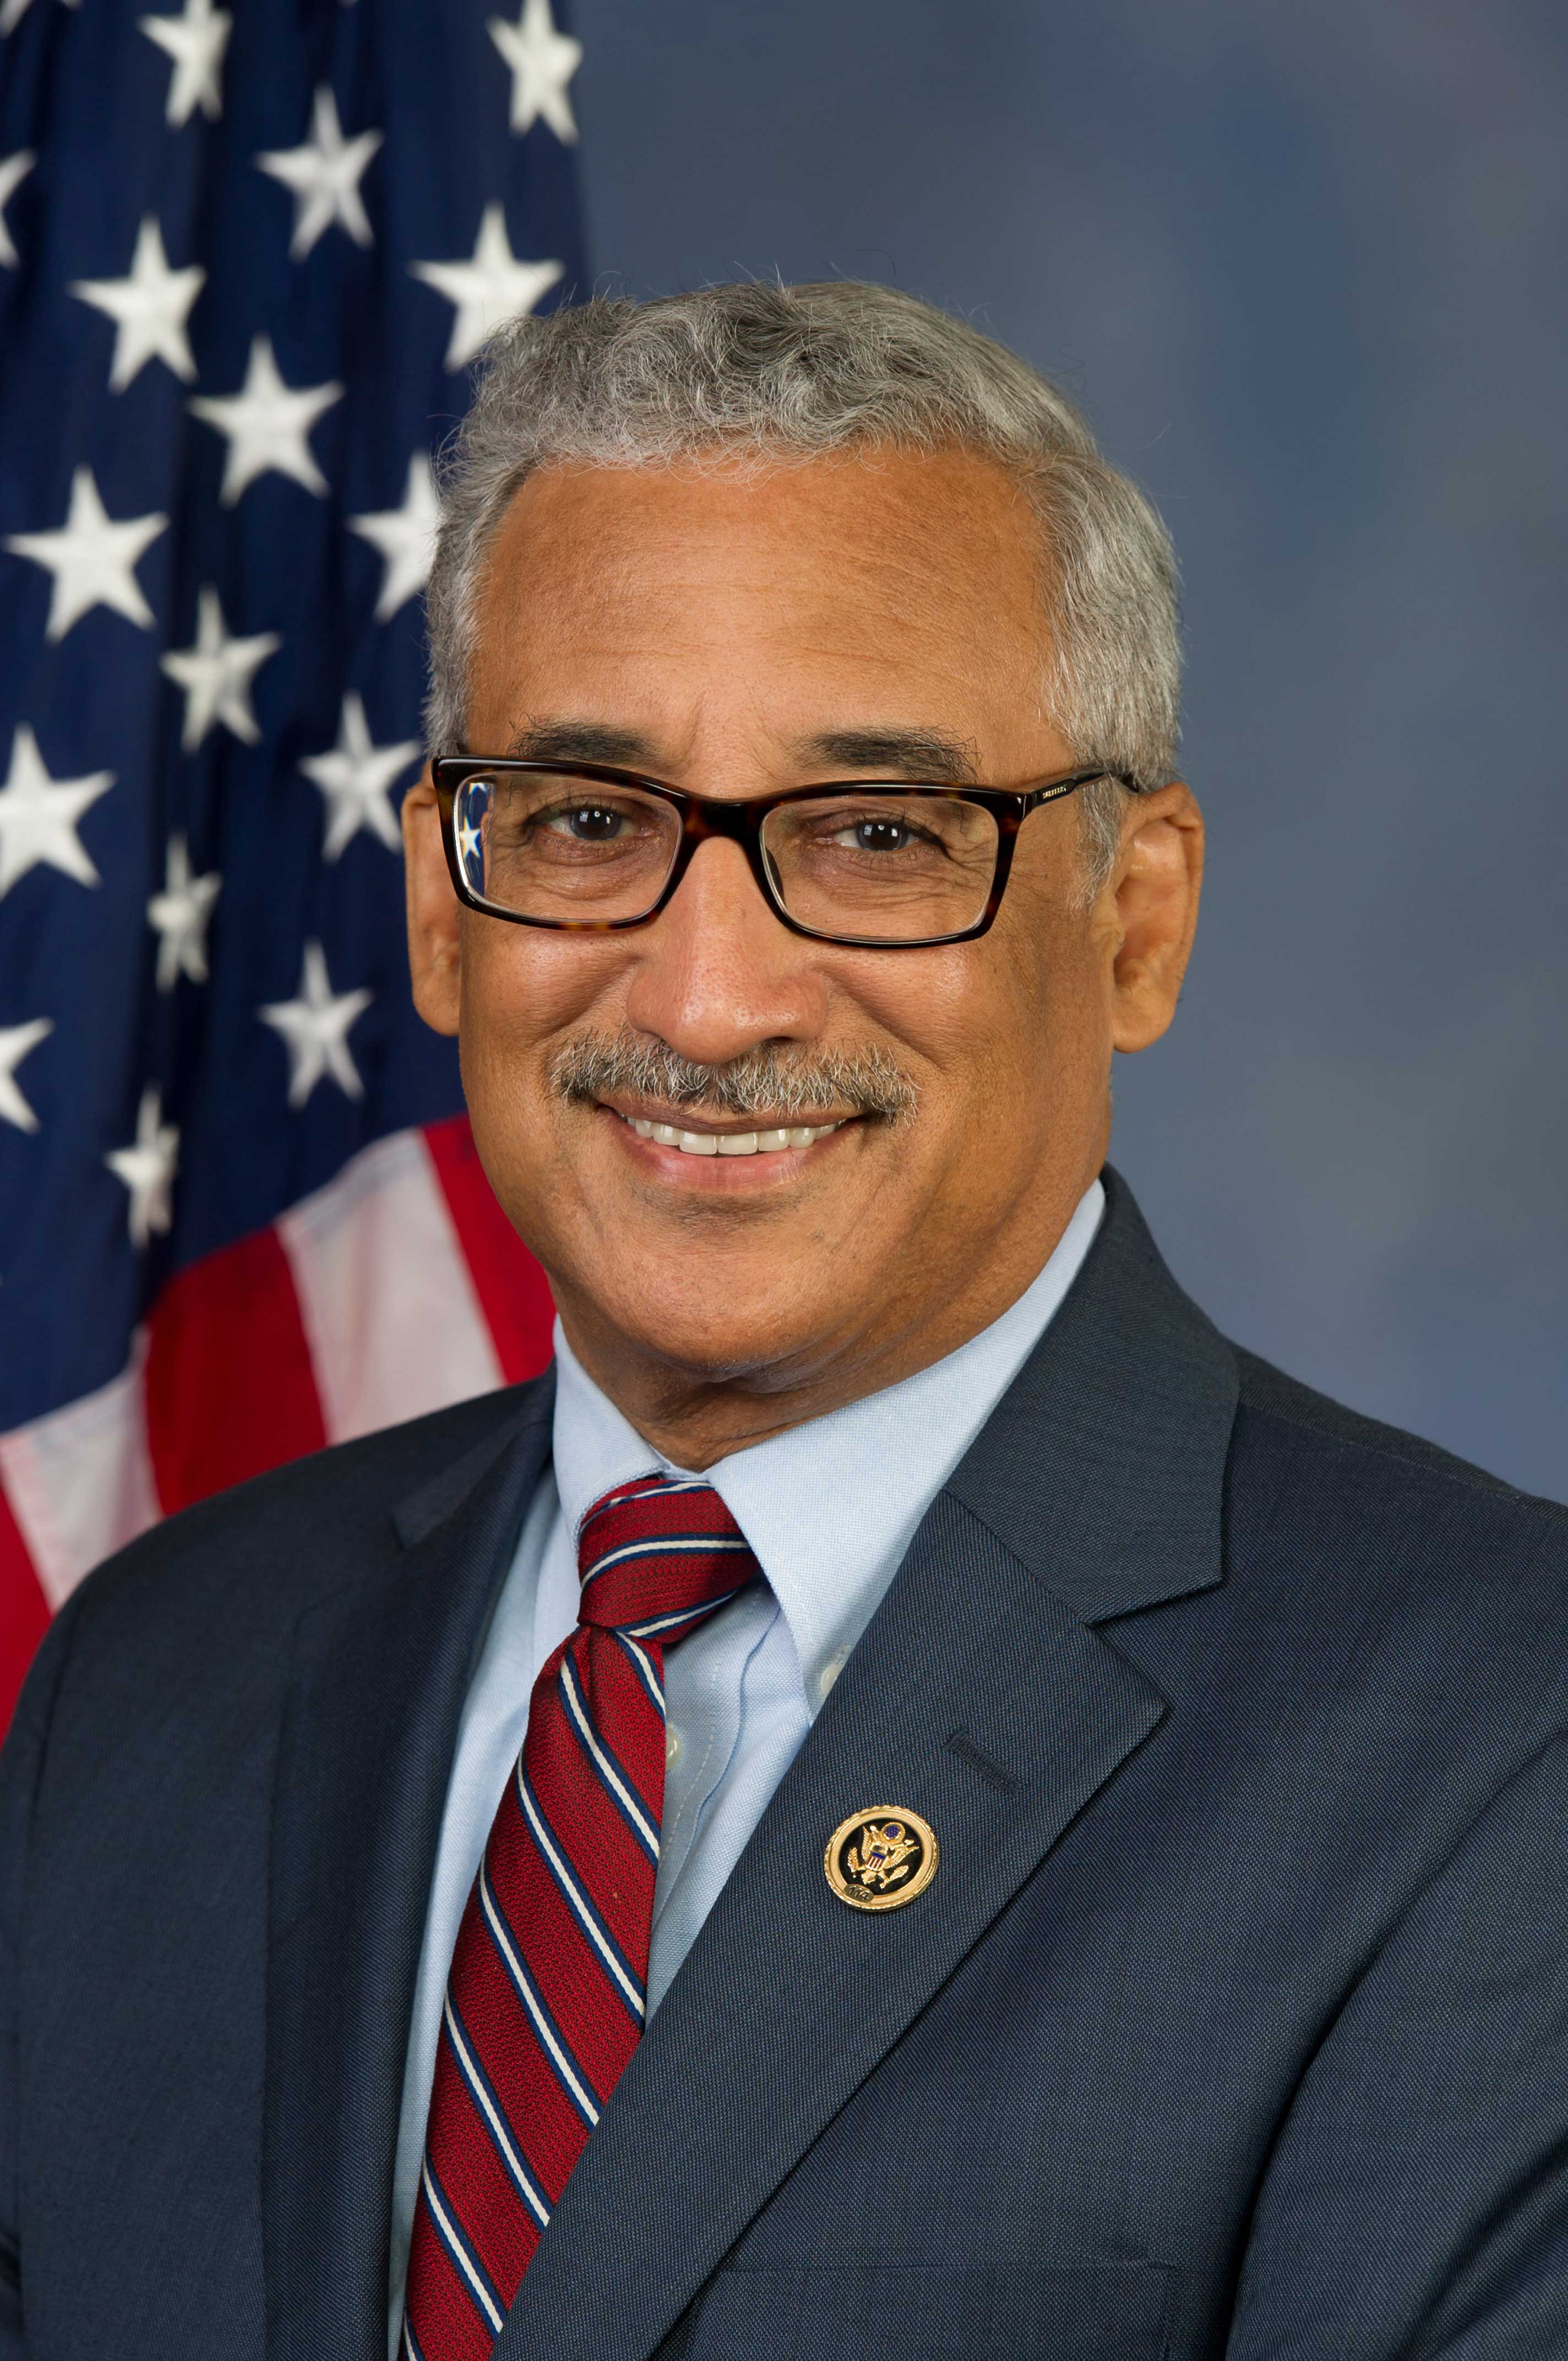 Rep. Scott's Official Portrait